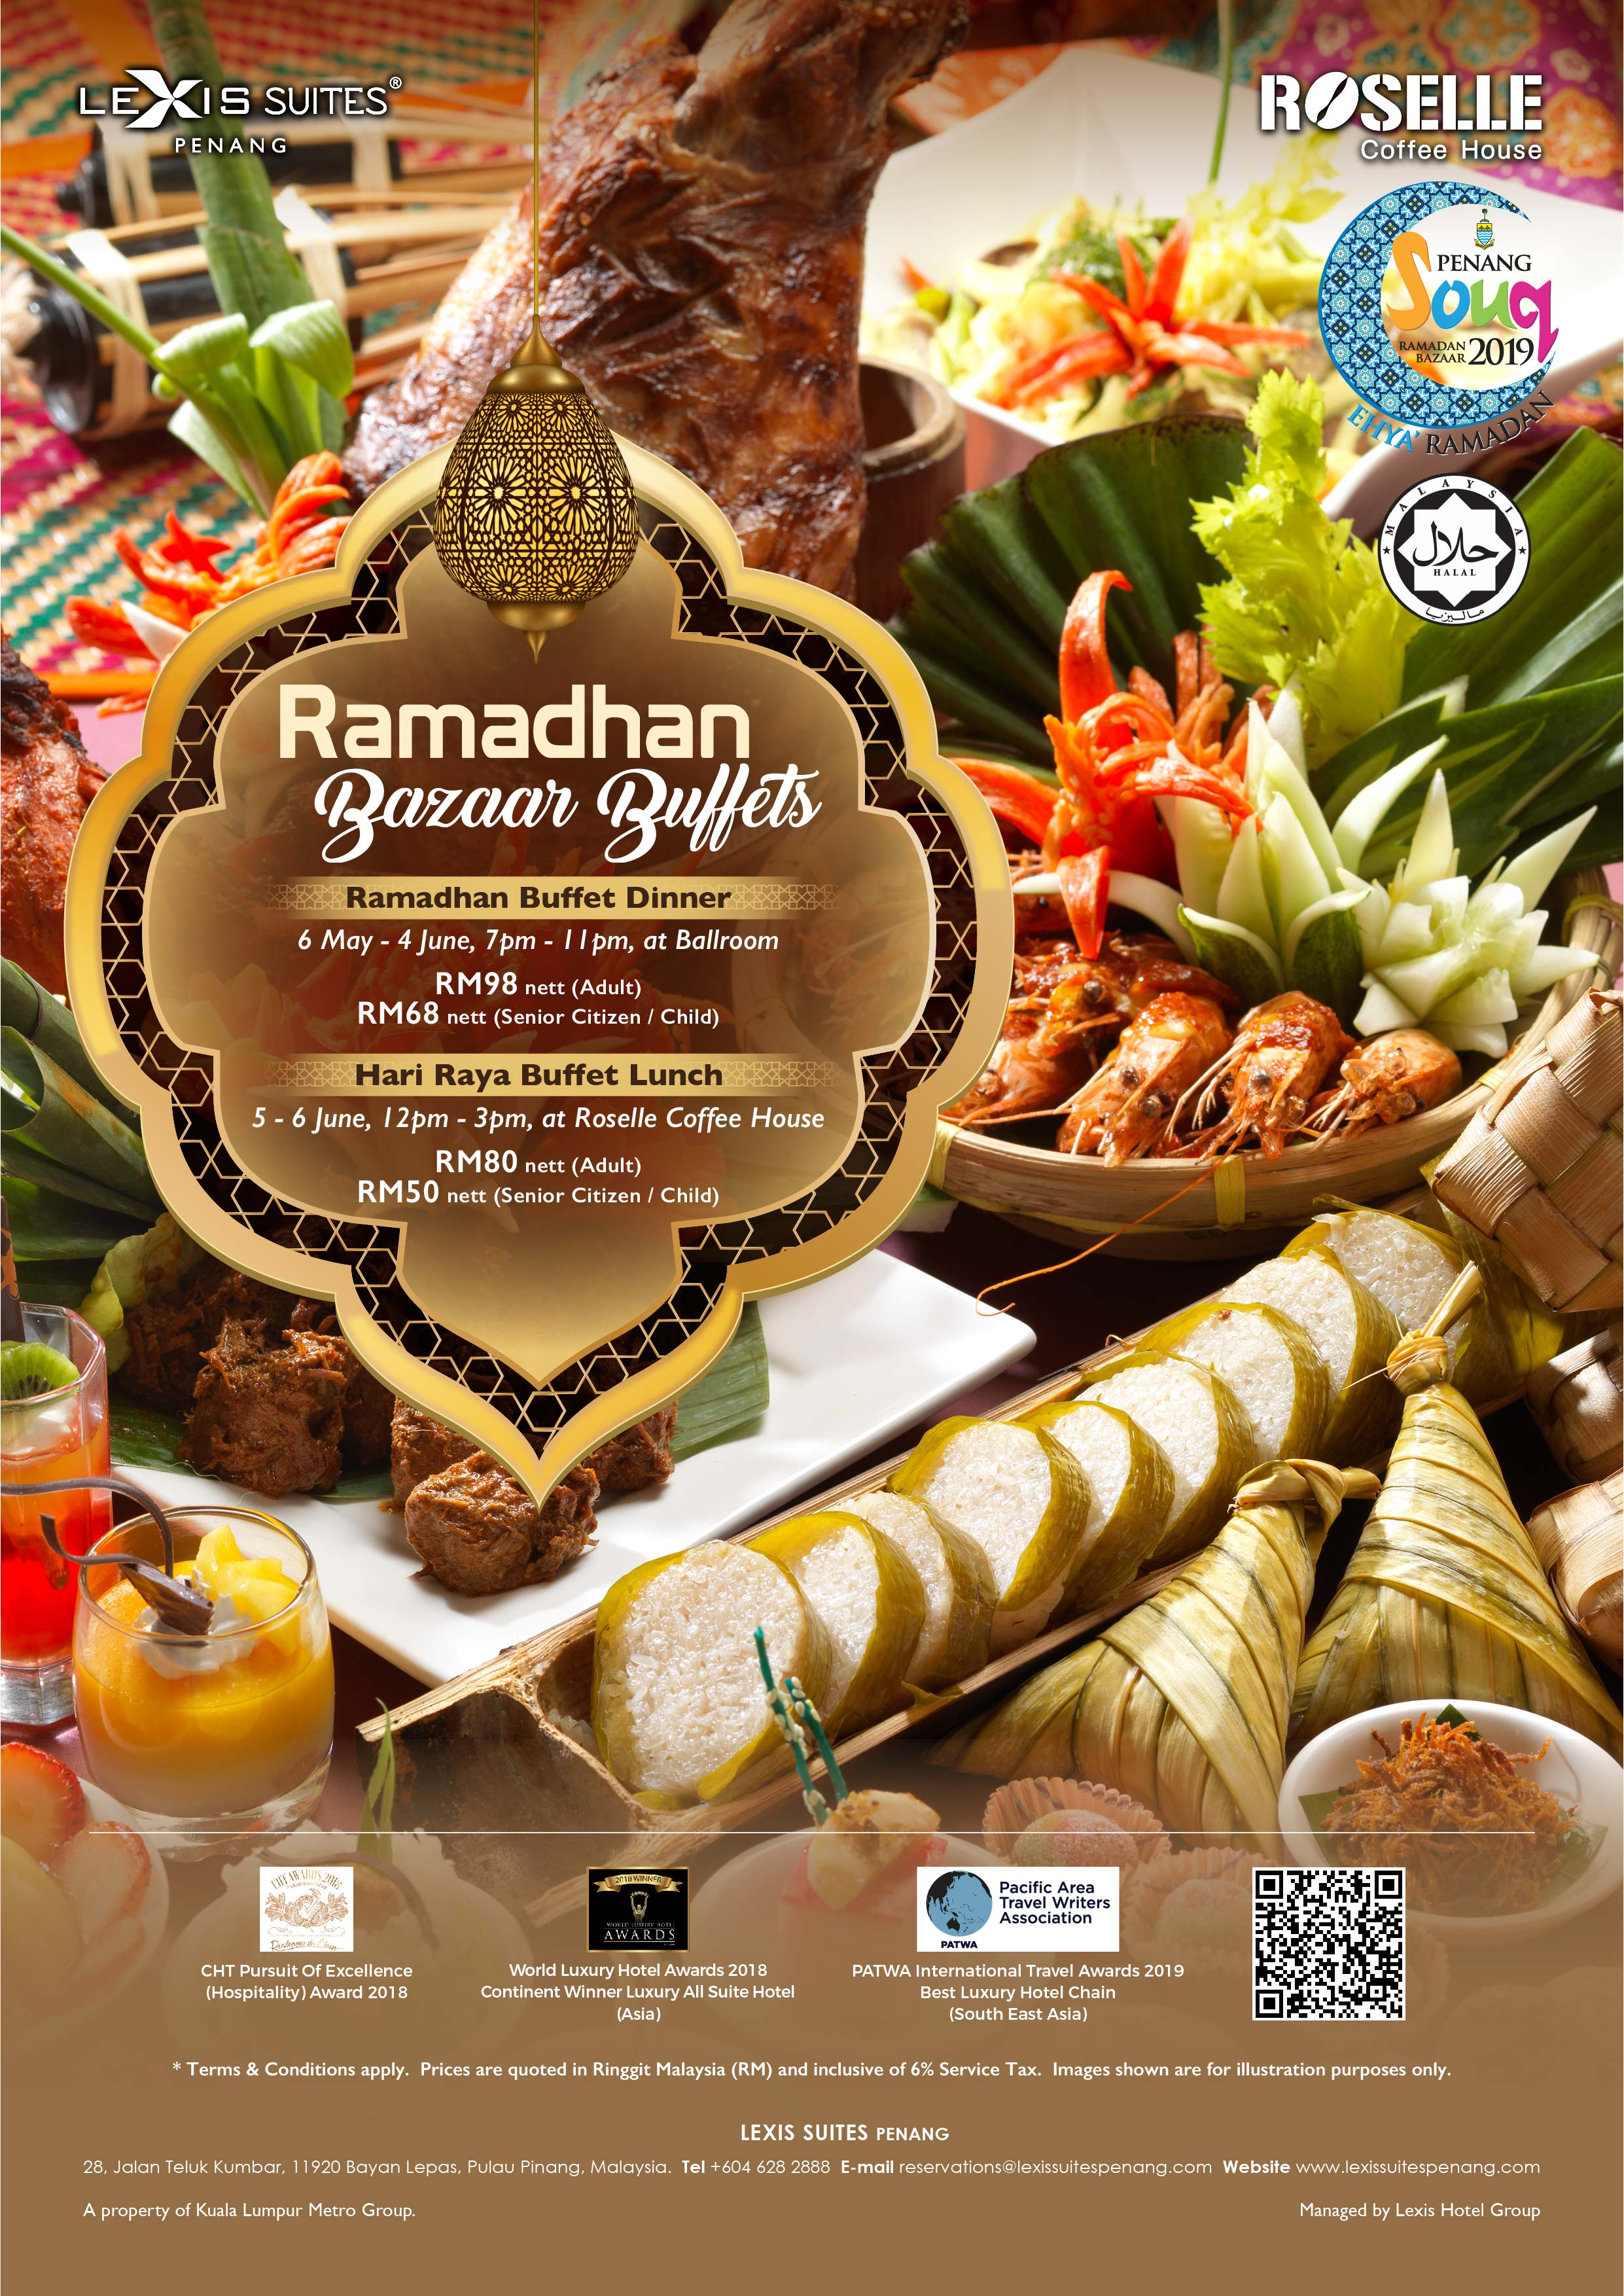 For The Month Of Ramadhan Lexis Suites Penang Offers A Special Bazaar Buffet Dinner With Your Favourite Traditional Malay Dishes All Under One Roof